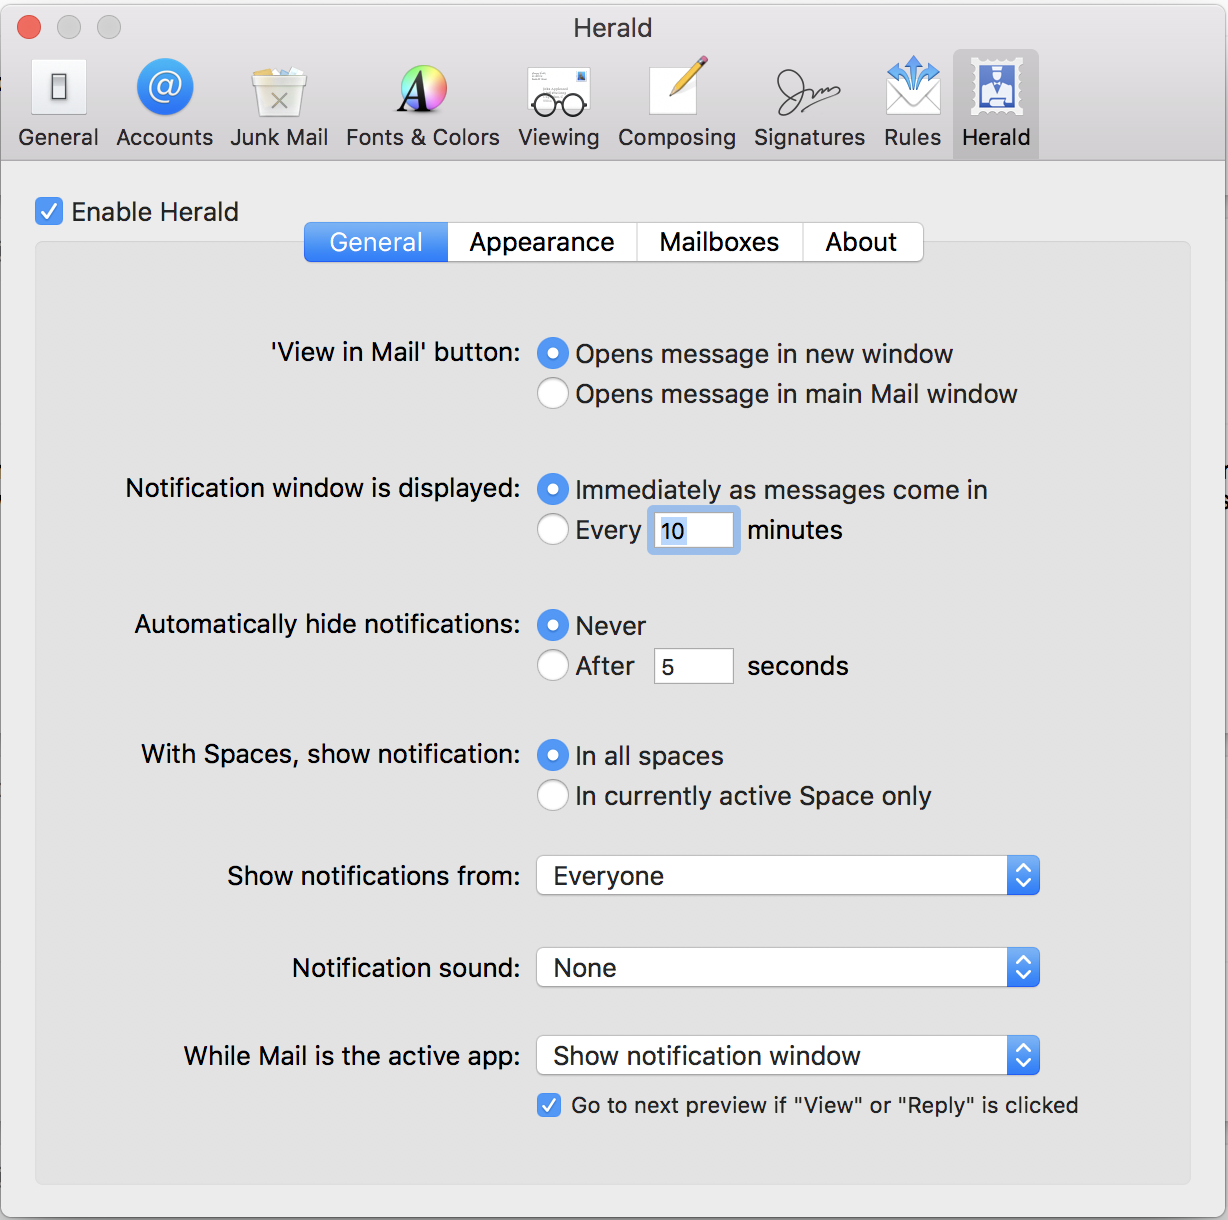 herald apple mail notifications plugin extension